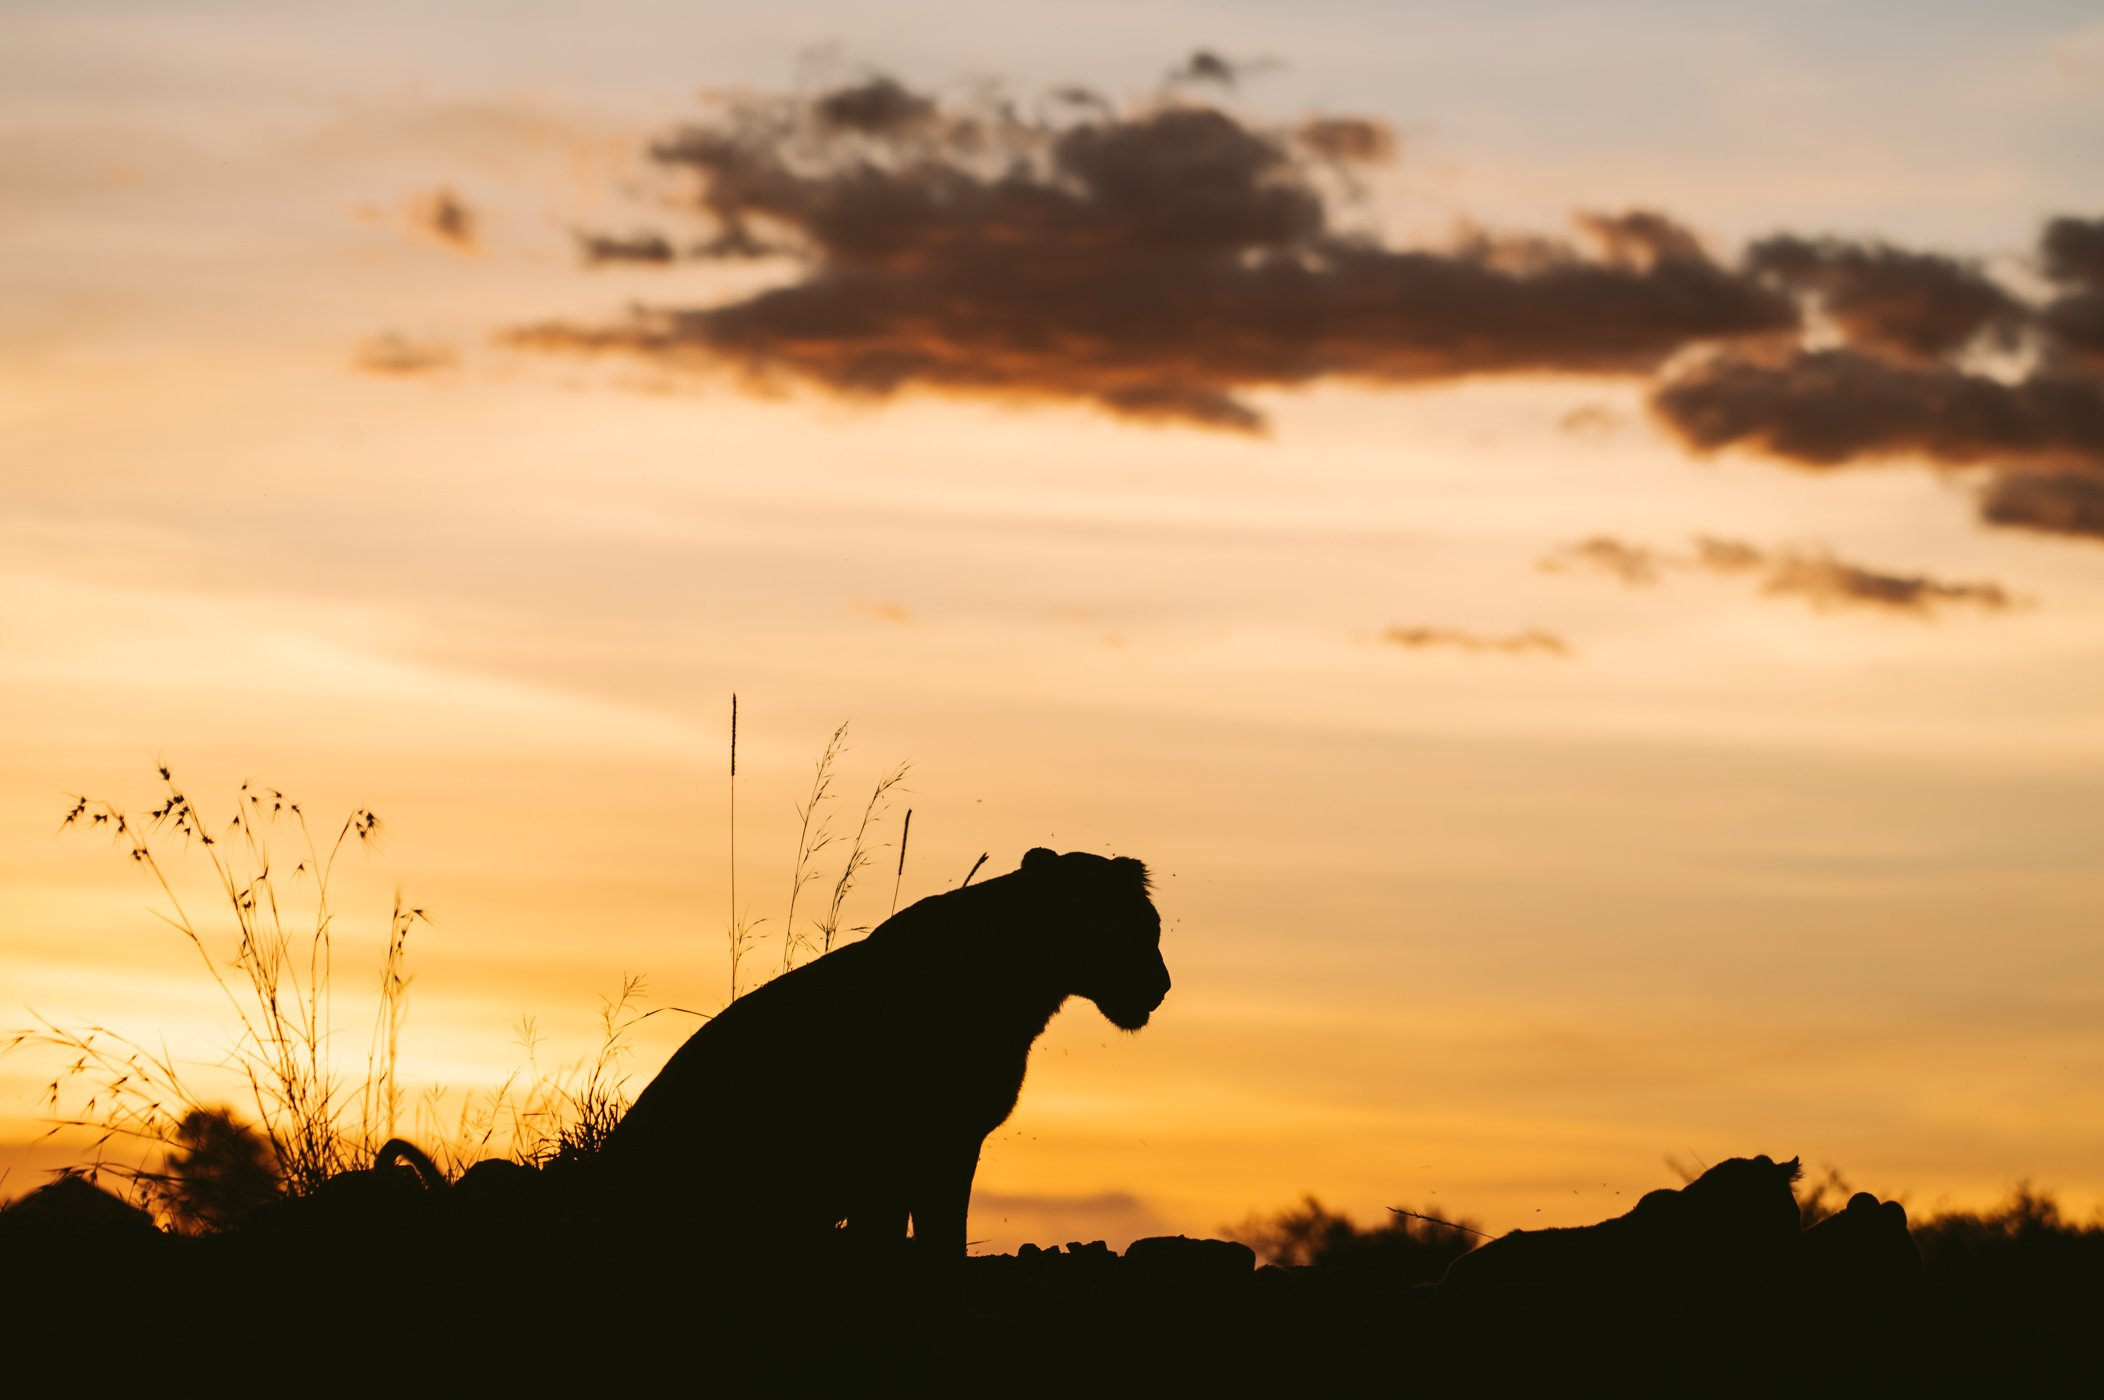 Lioness at sunset in the Maasai Mara in Kenya